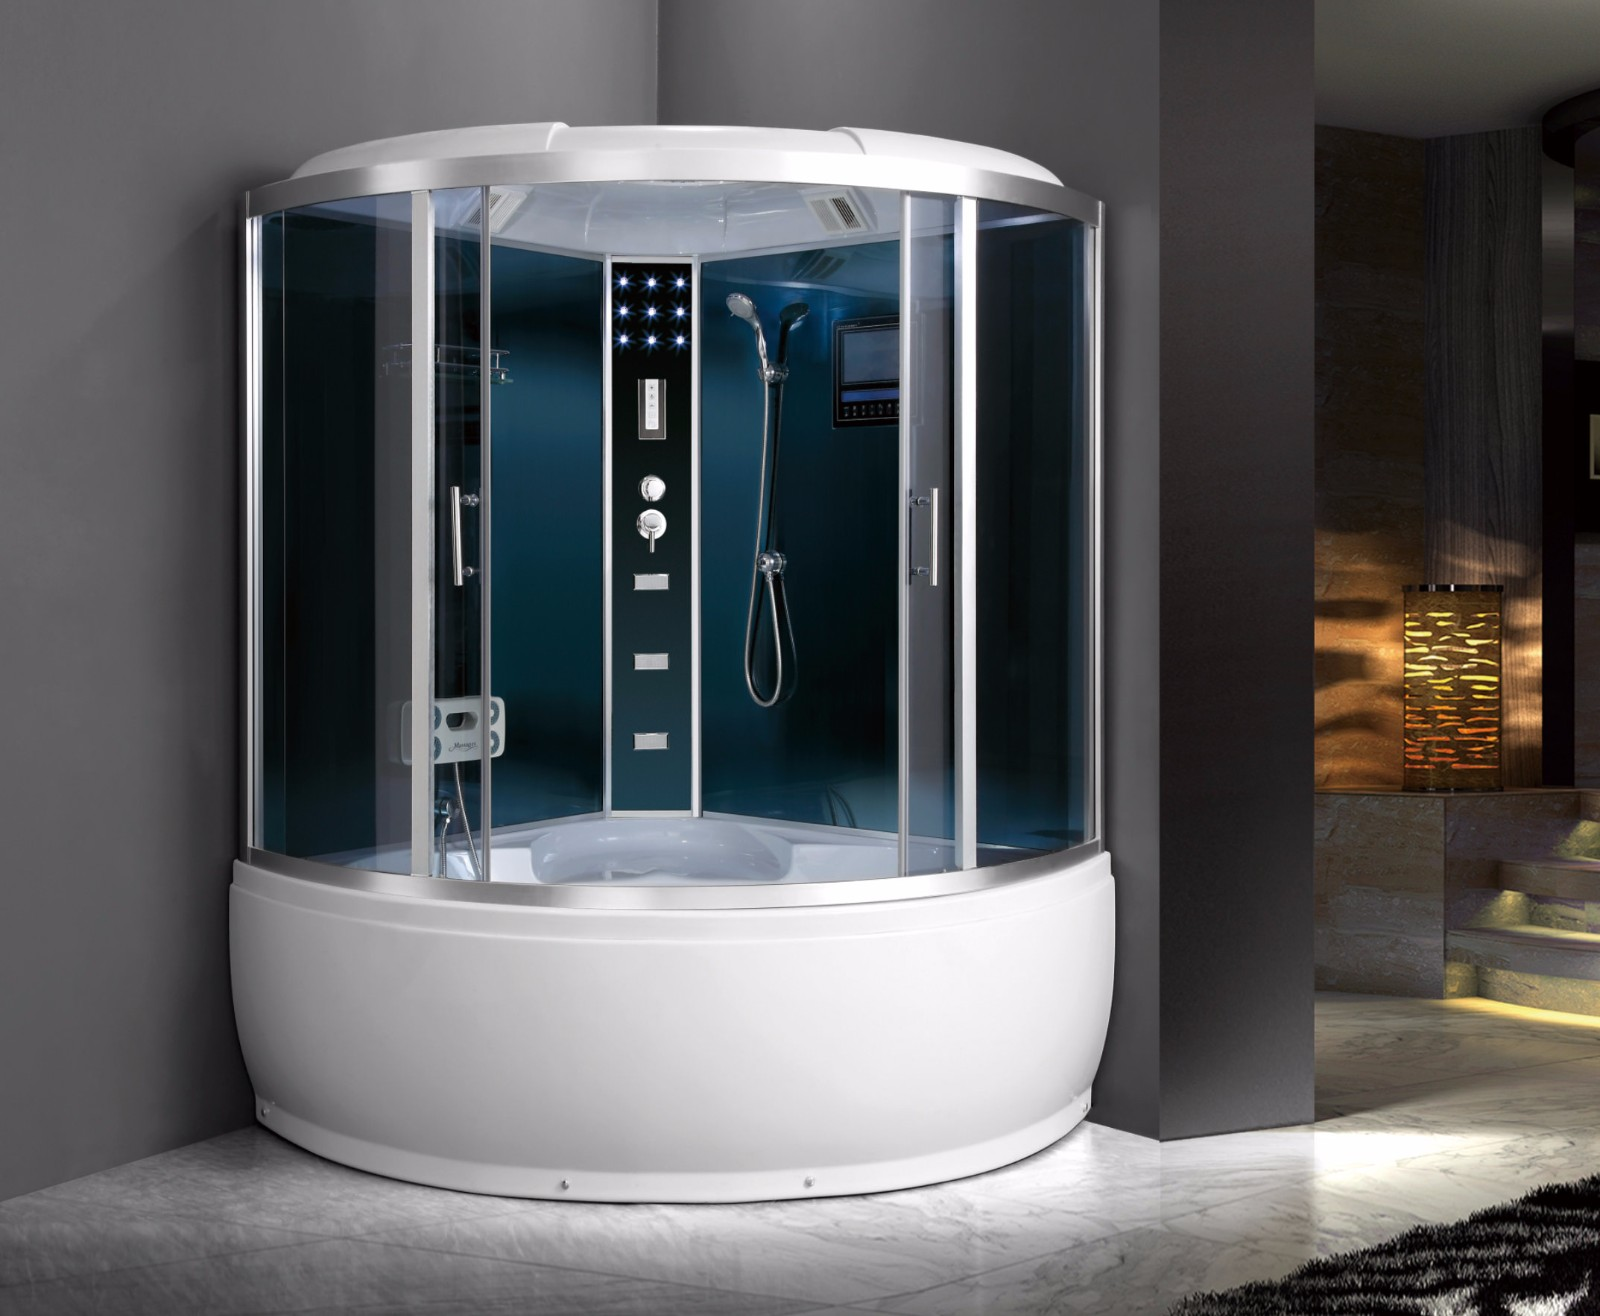 M-515-A Steam Jetted Corner Sector Shower Enclosure with Bathtub for Sale.jpg